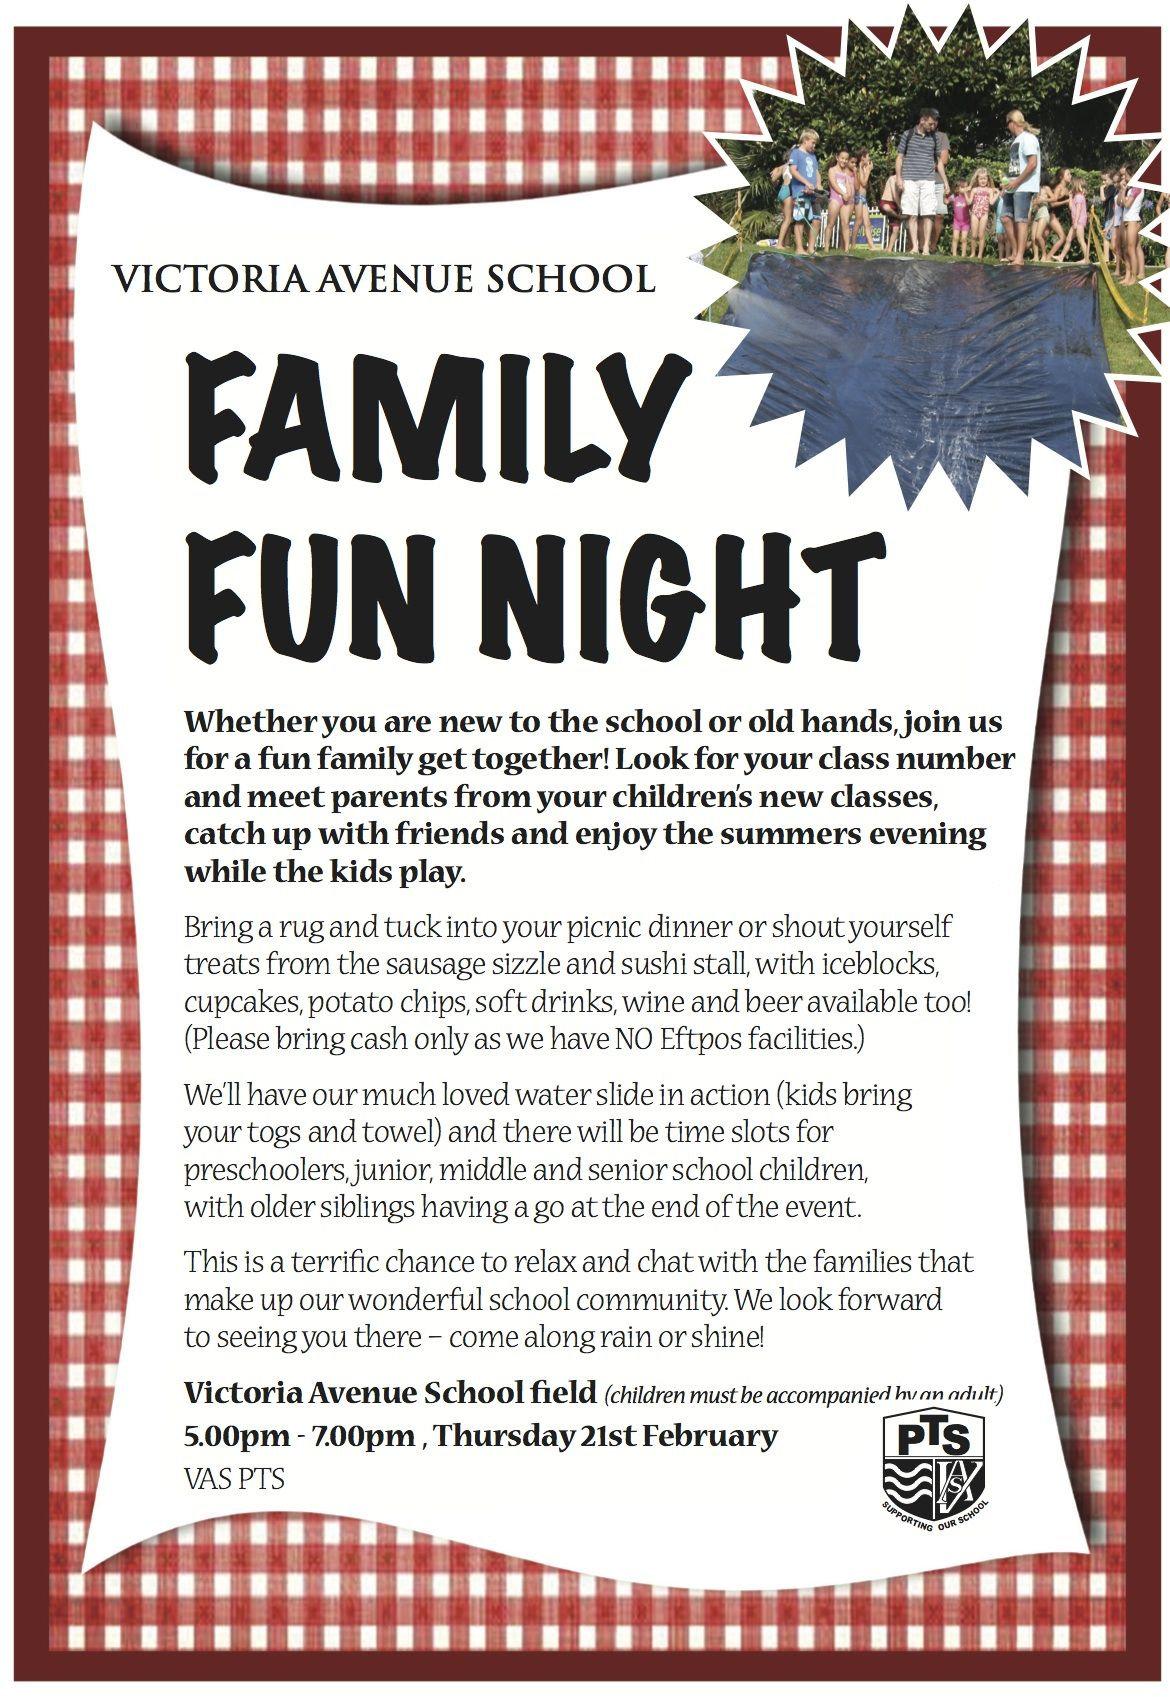 VASchool Family Fun Night Flyer